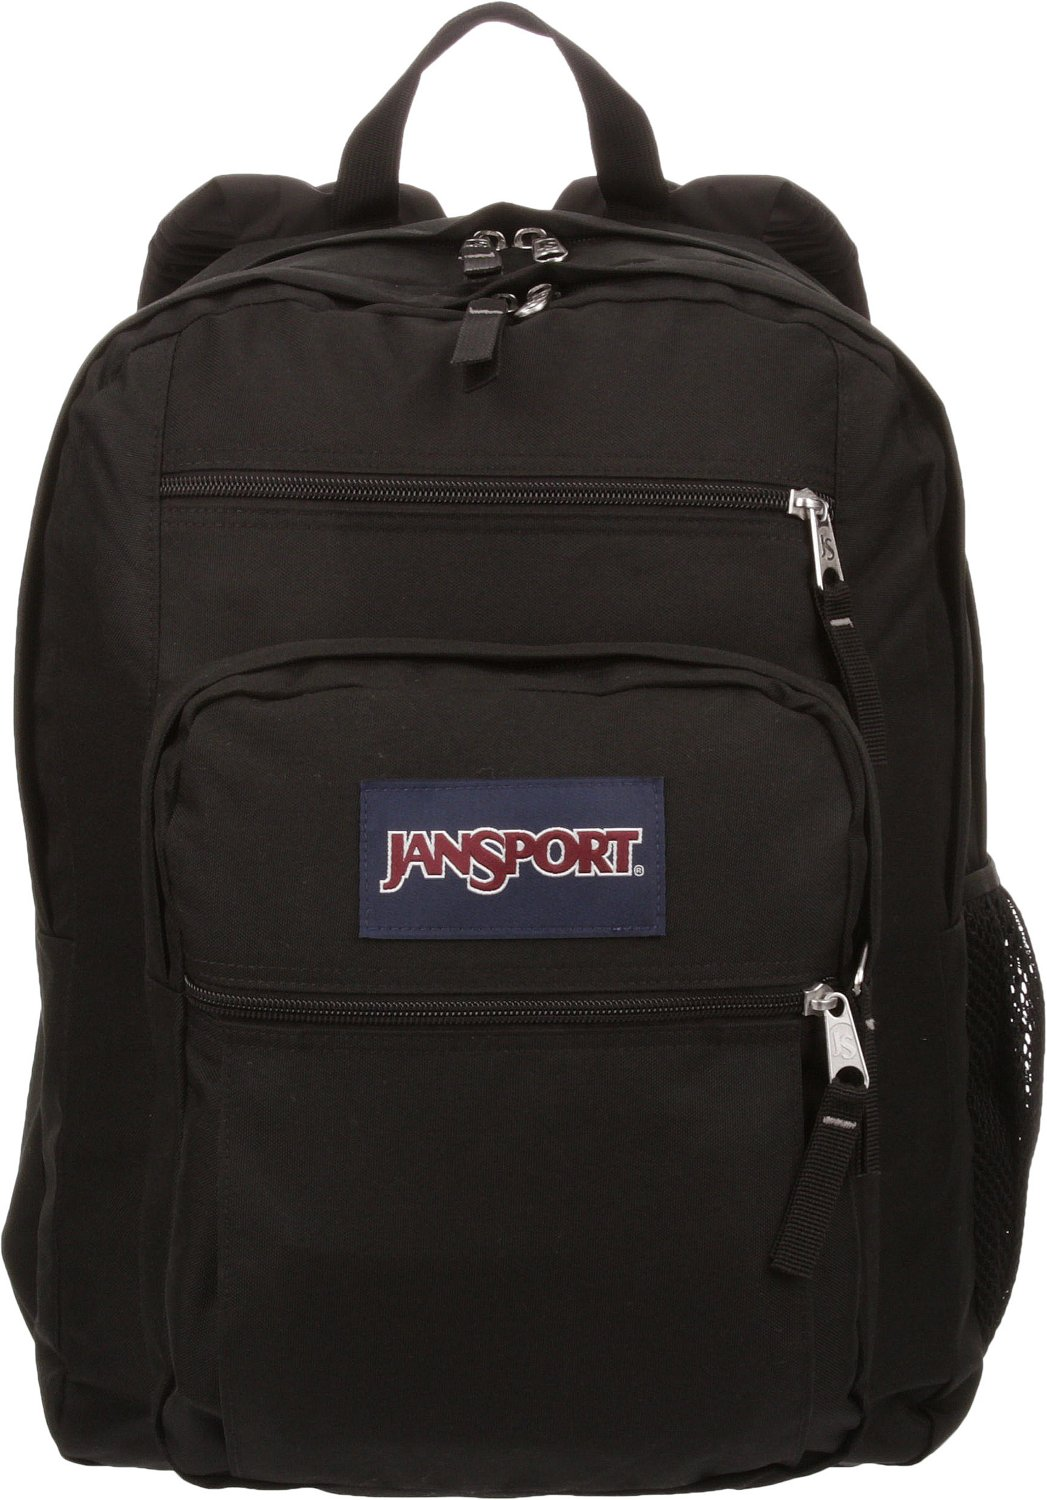 JanSport Big Student Backpack - view number 3